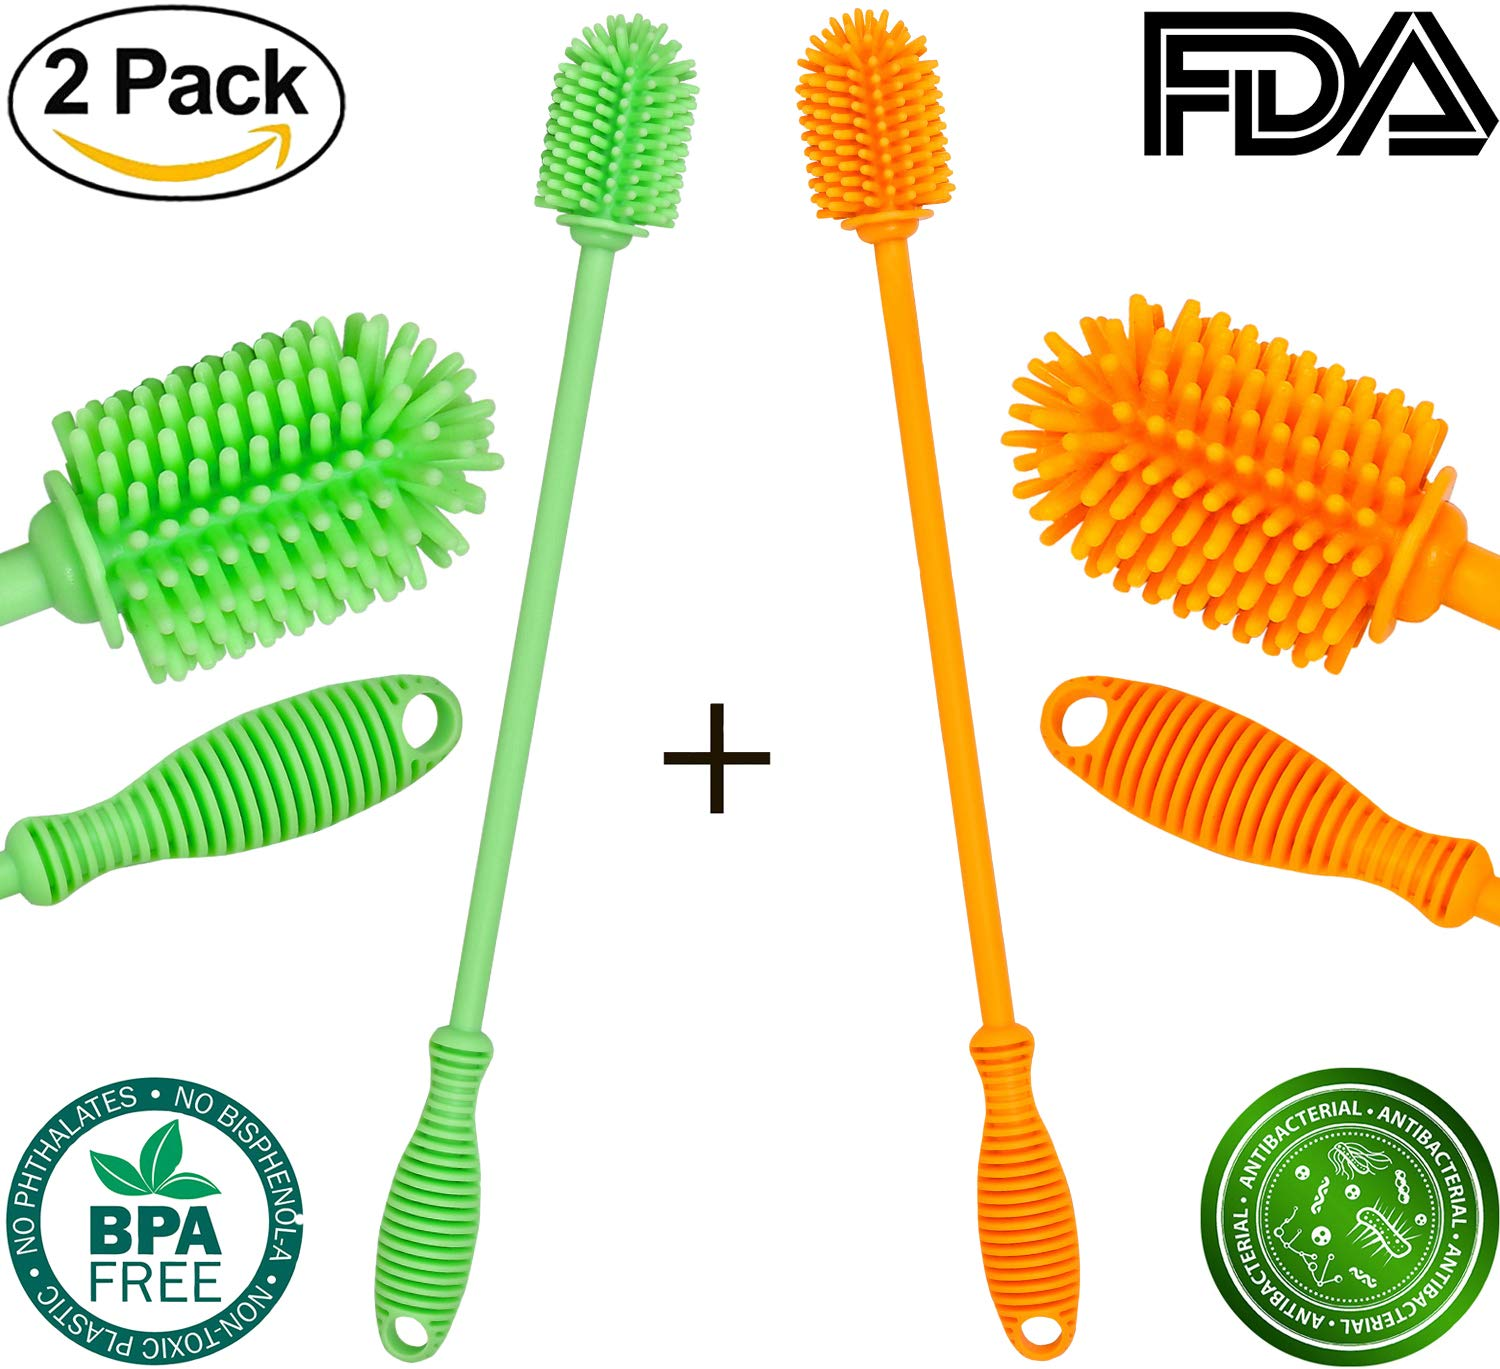 Bottle Brush Cleaner - Antibacterial Silicone Bottle Cleaning Brush Set Long Handle for Washing Water Bottle (Orange, Green) Ulutrust